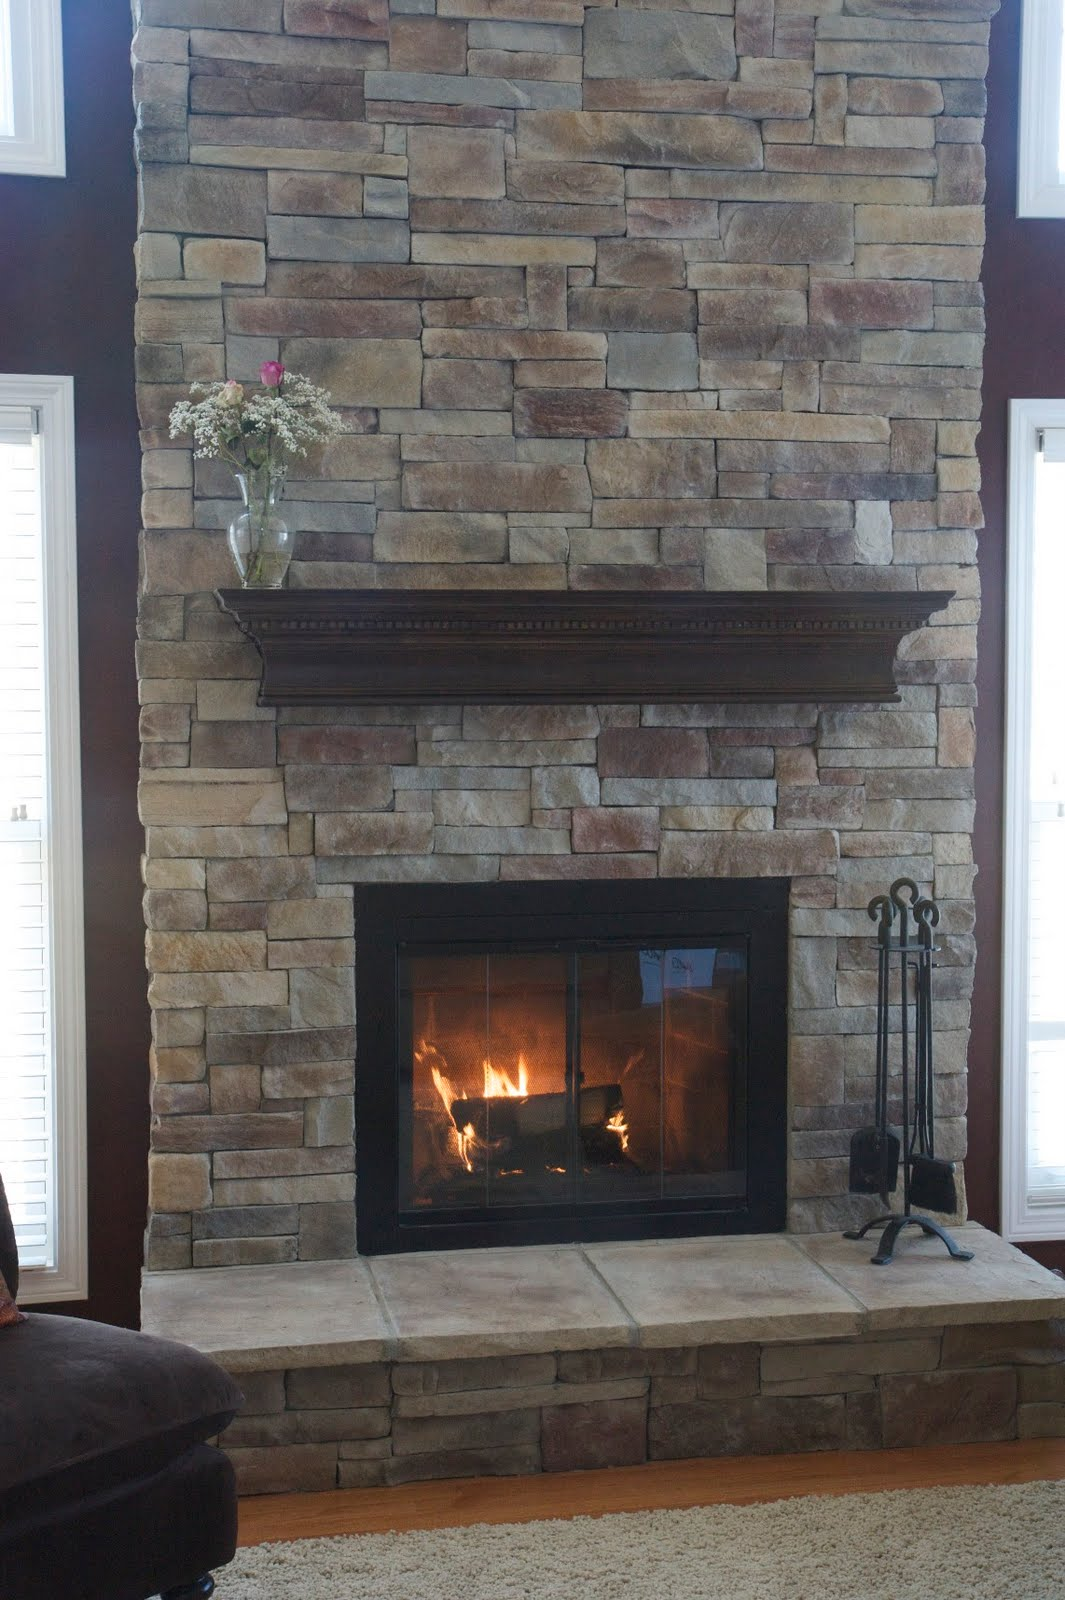 North star stone stone fireplaces stone exteriors did for Fireplace half stone